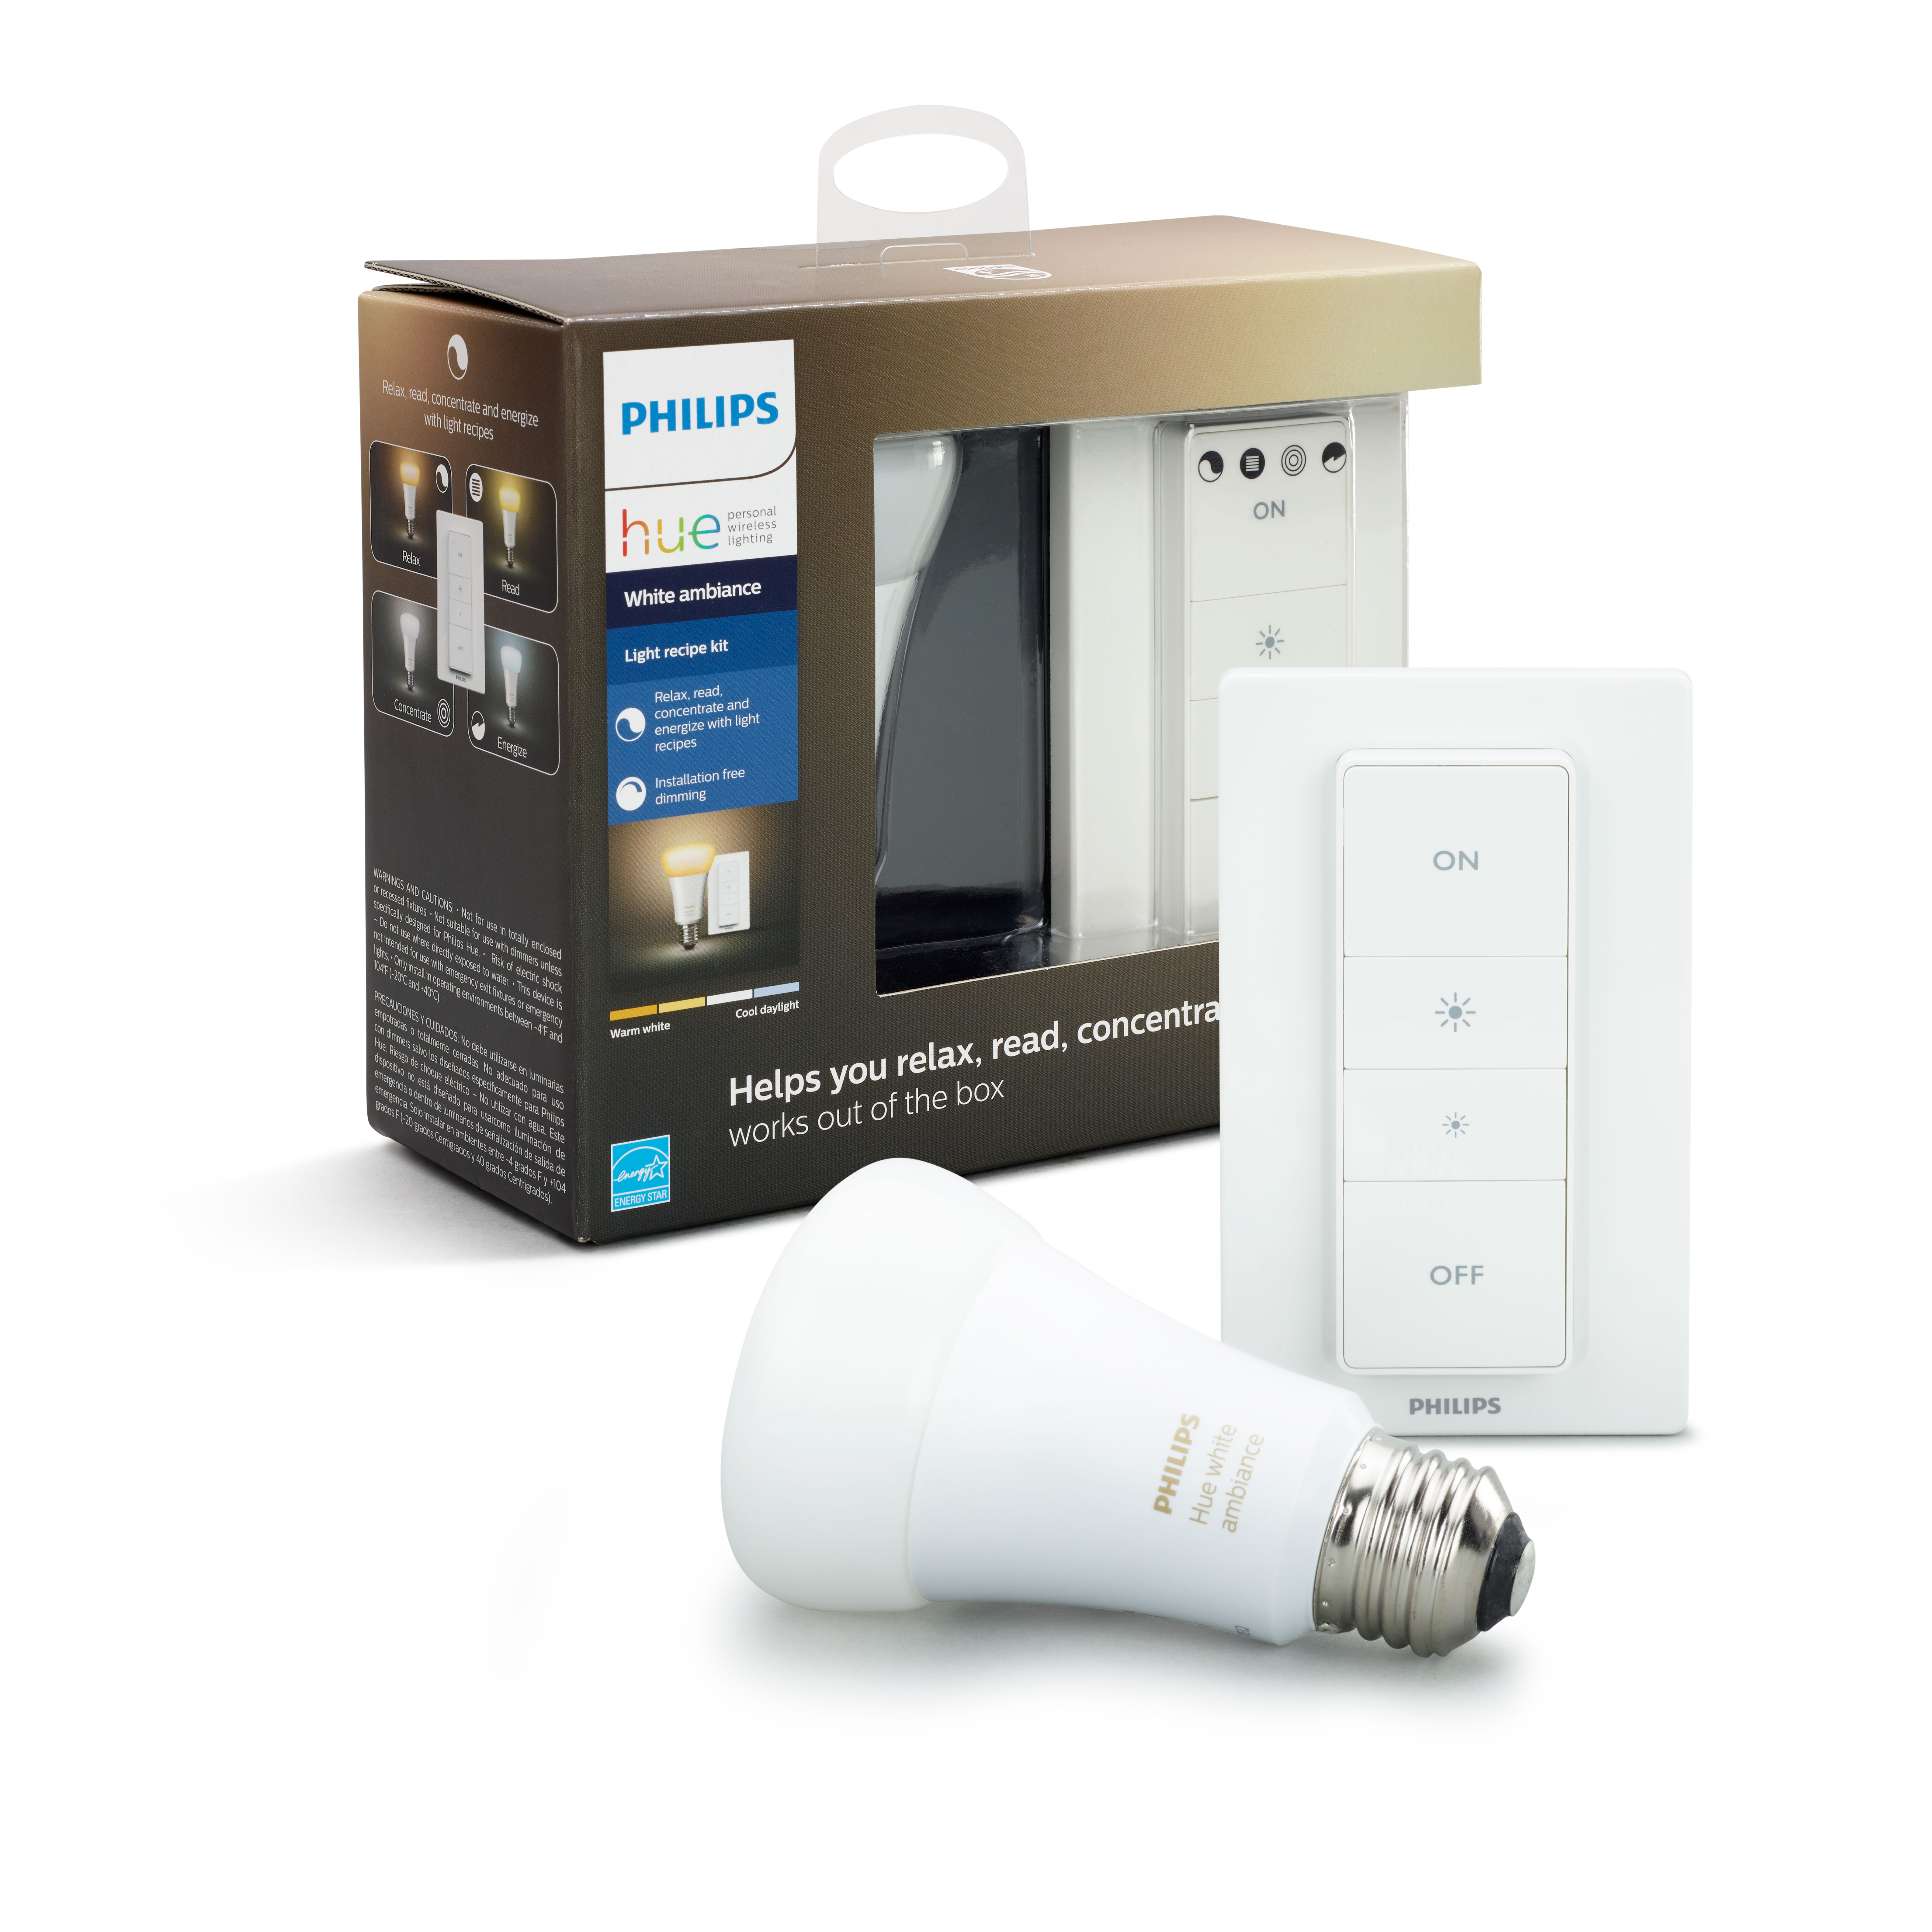 Philips Hue White Ambiance Smart A19 Light Kit, 60W Equivalent, Hub Required, 1 Bulb